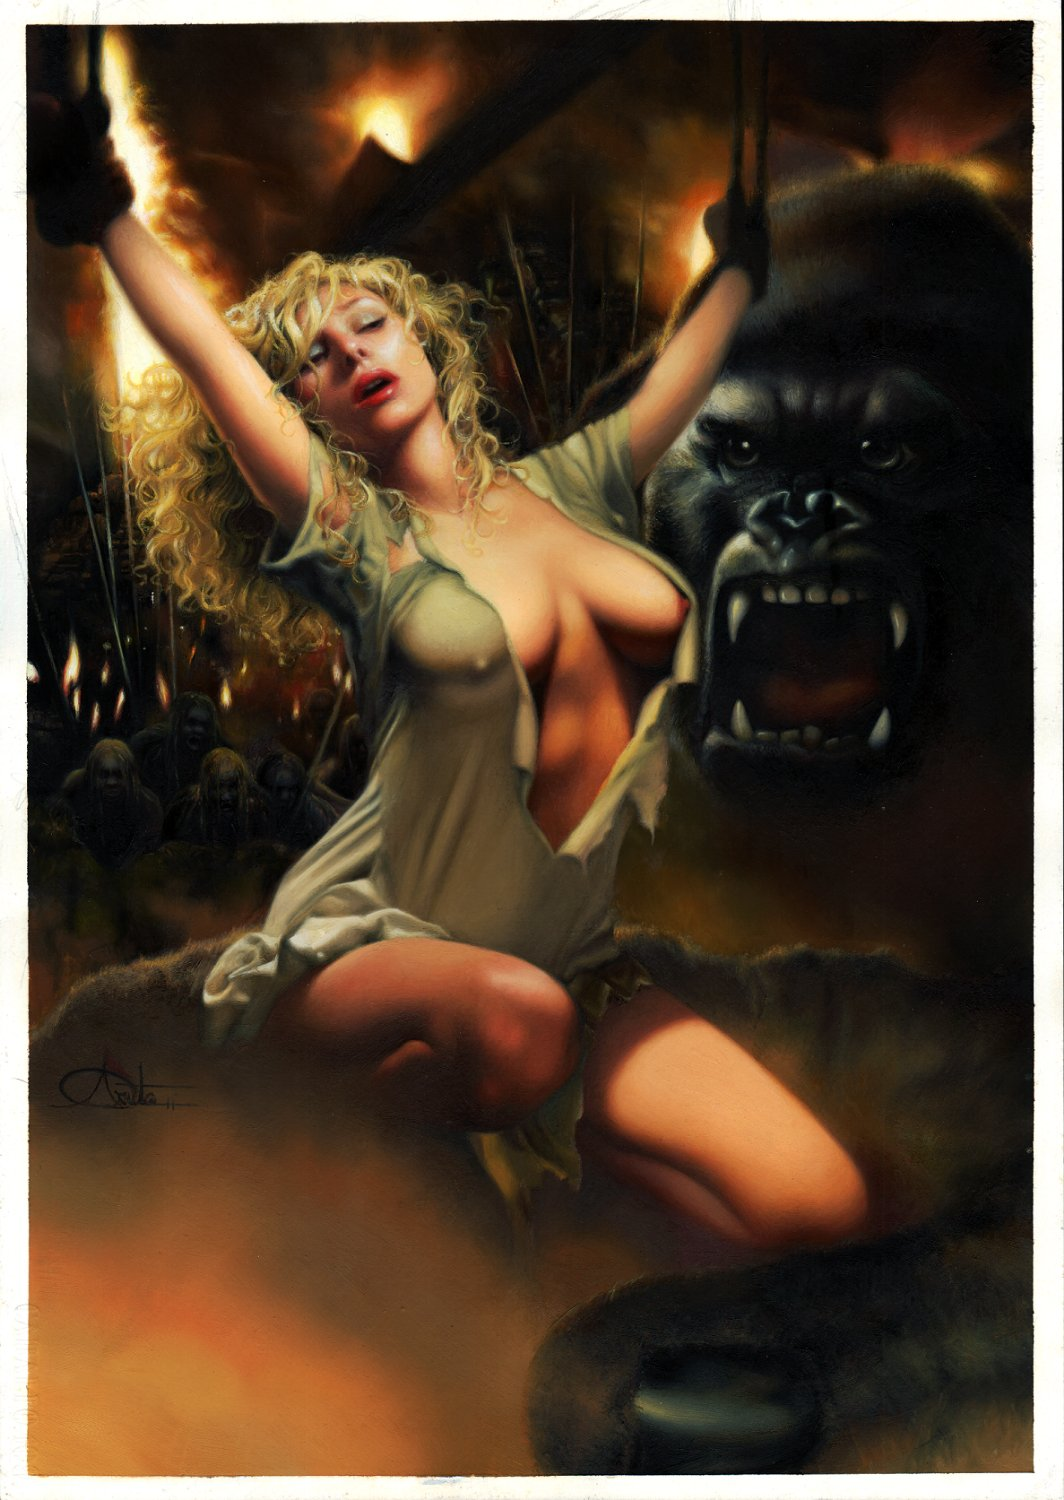 KING KONG & BONDAGE ANN DARROW (Scarlett Johansson) Stunning Painting (OVER 18 YRS OLD TO VIEW!) 2005